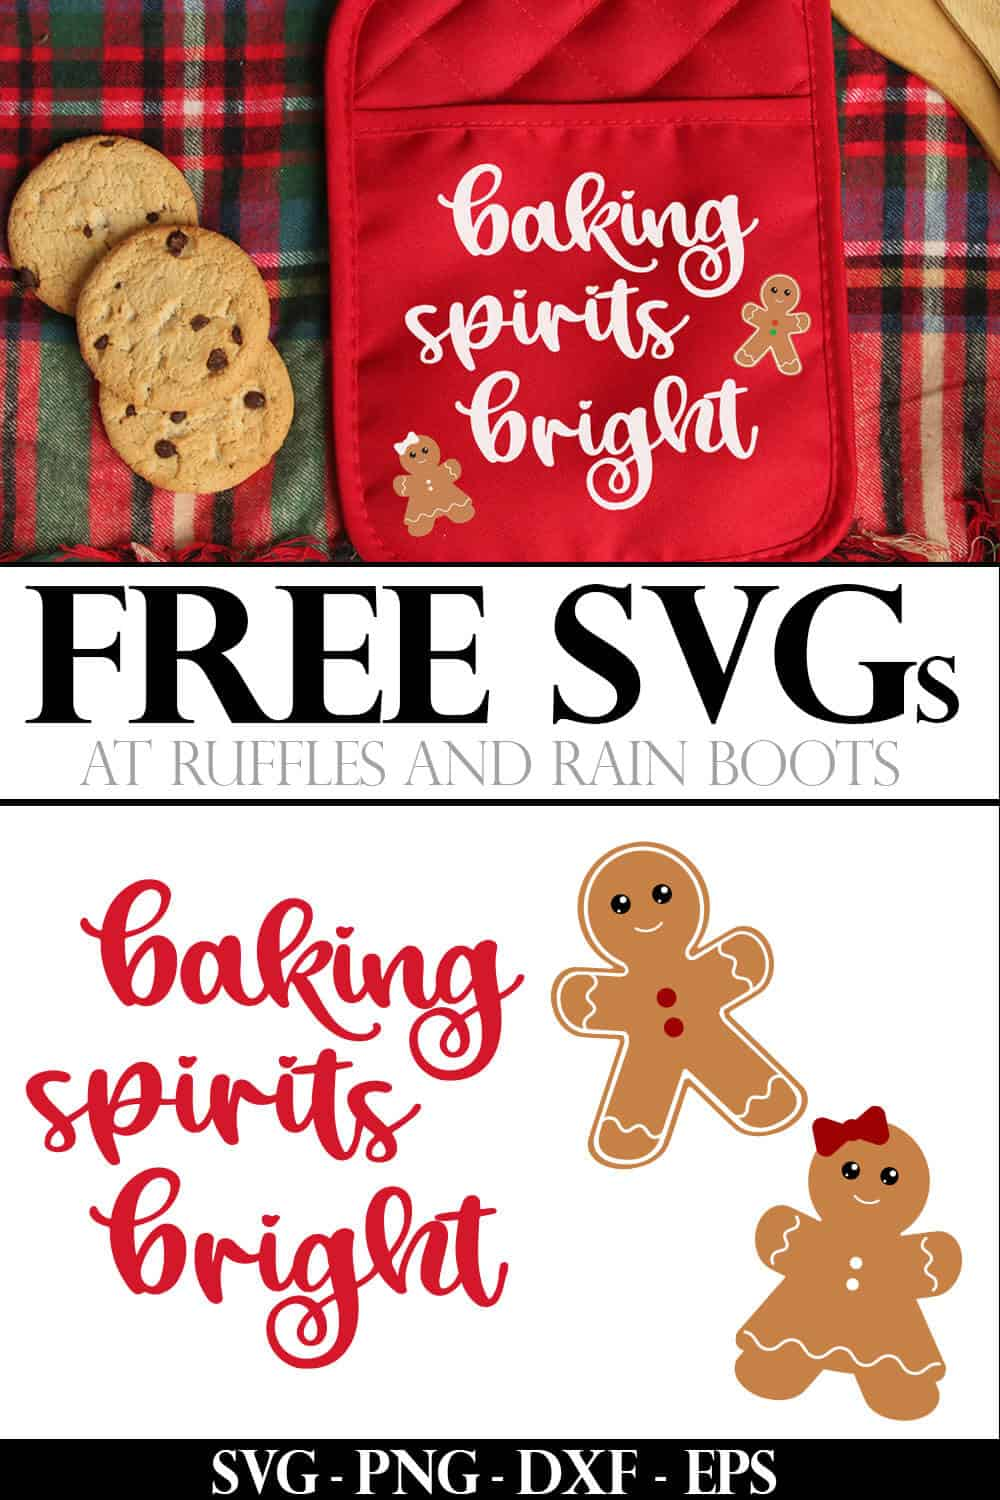 Christmas cut files baking spirits bright svg potholder made with Cricut iron on heat transfer vinyl with text which reads free svg at ruffles and rain boots